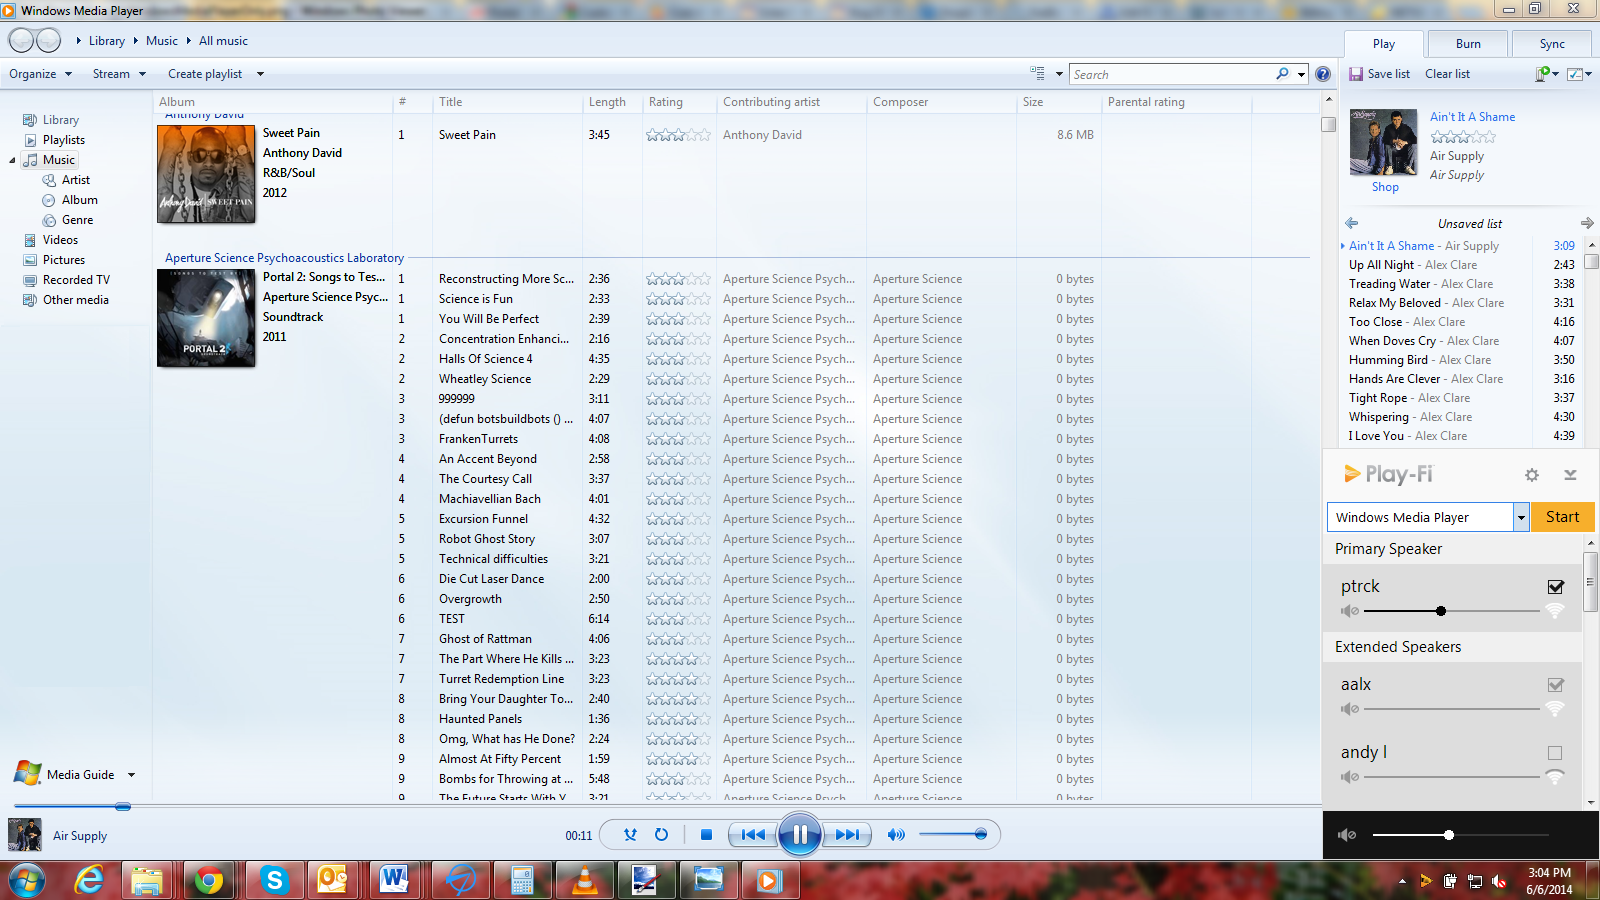 Streaming audio only from Windows Media Player!